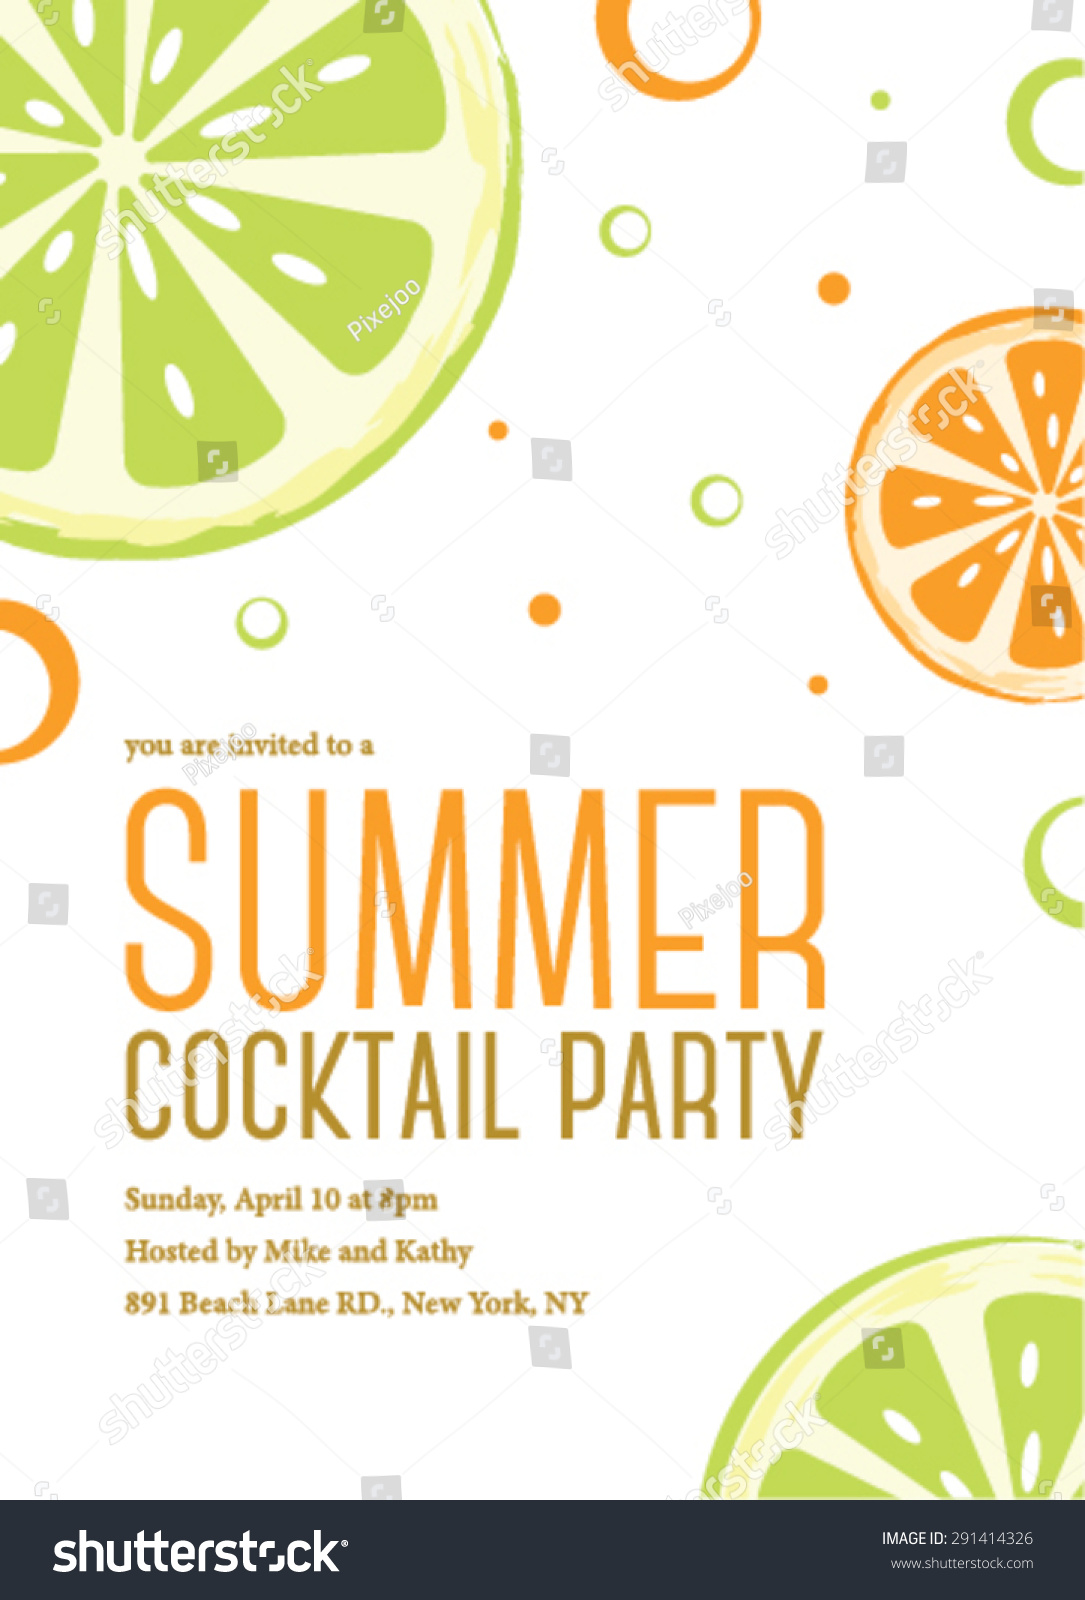 Summer Cocktail Party Invitation Template Vector 291414326 – Cocktail Party Invitation Template